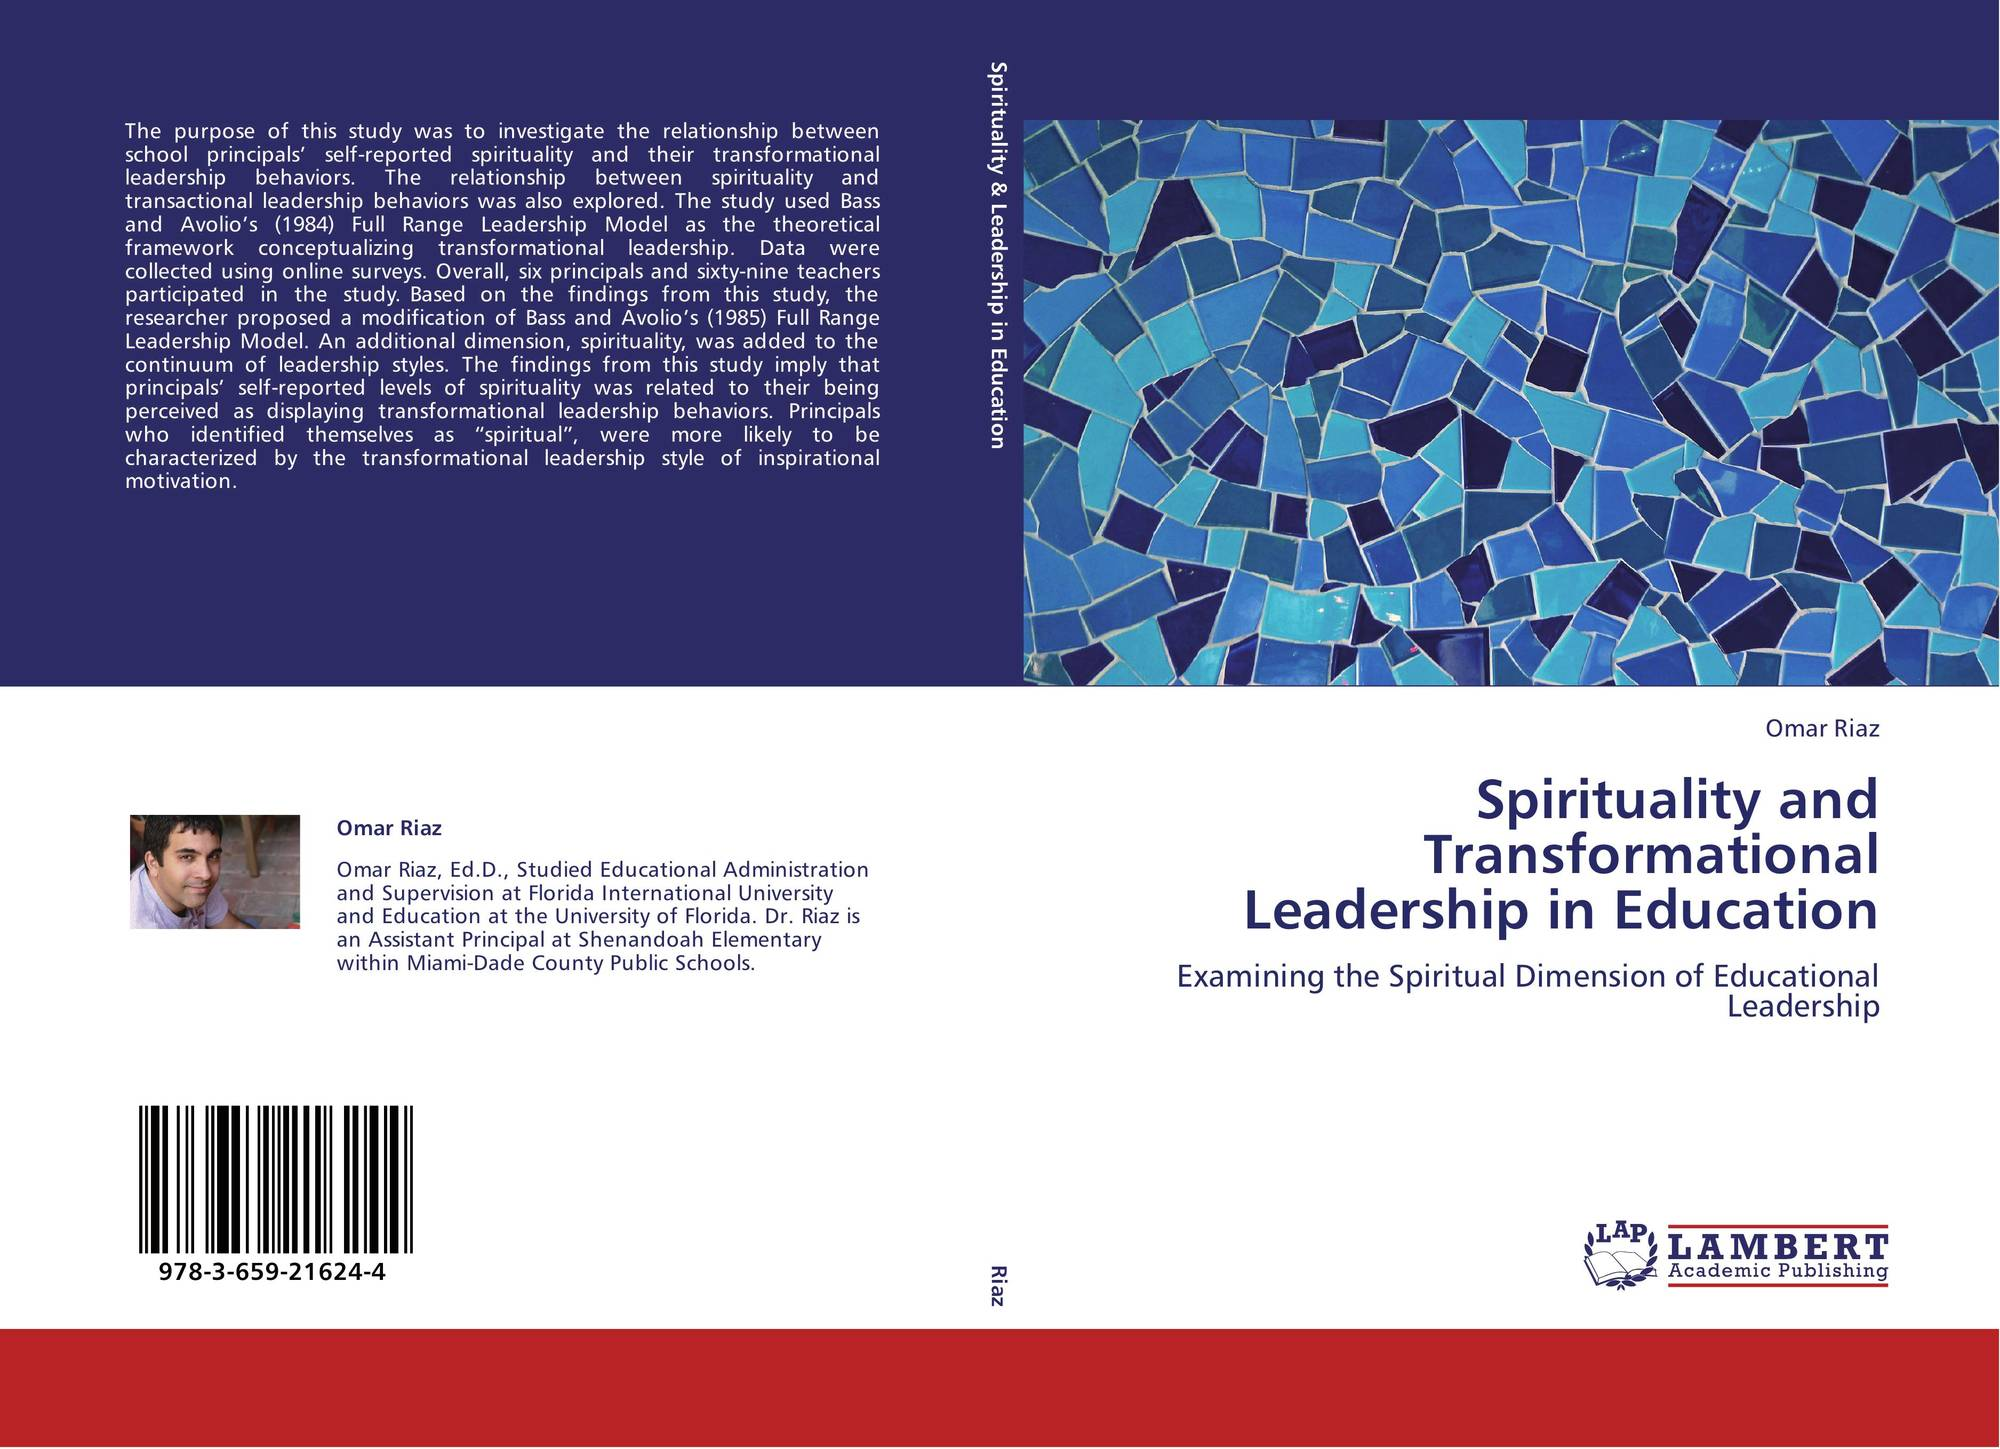 an exploration of theories of action in leadership development a case study His main focus was the health and well-being of those less fortunate and it was obvious in this case study i feel the size of the following grew putting others first is the essence of servant leadership.